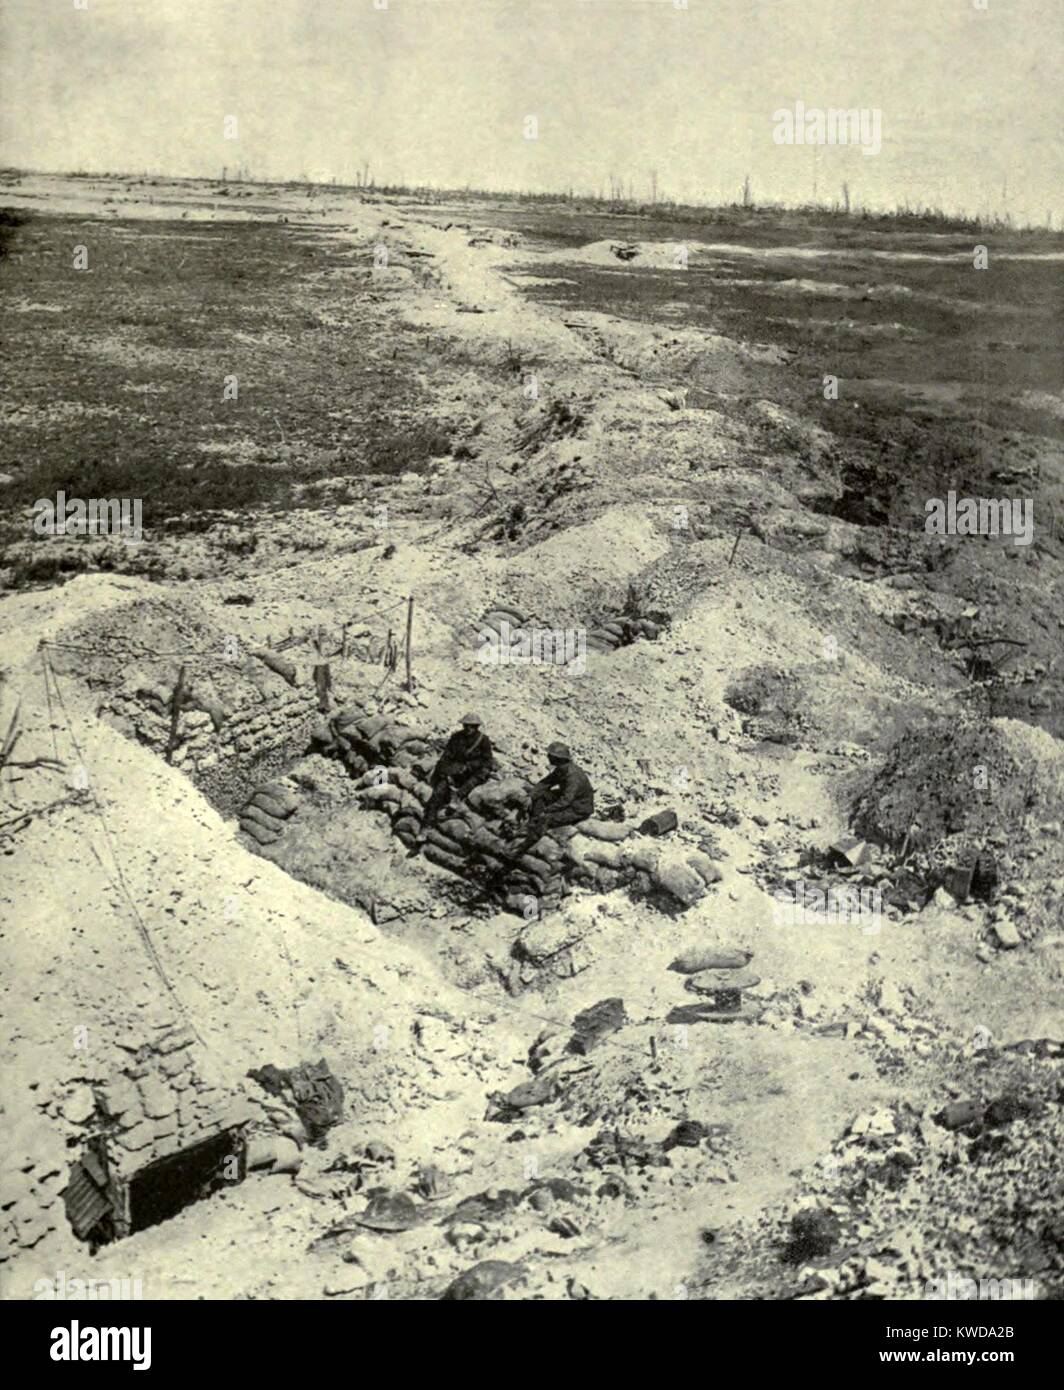 World War 1. Somme Offensive. The most desolate region of the Somme Battlefield near Ovillers-la-Boiselle, an obliterated - Stock Image